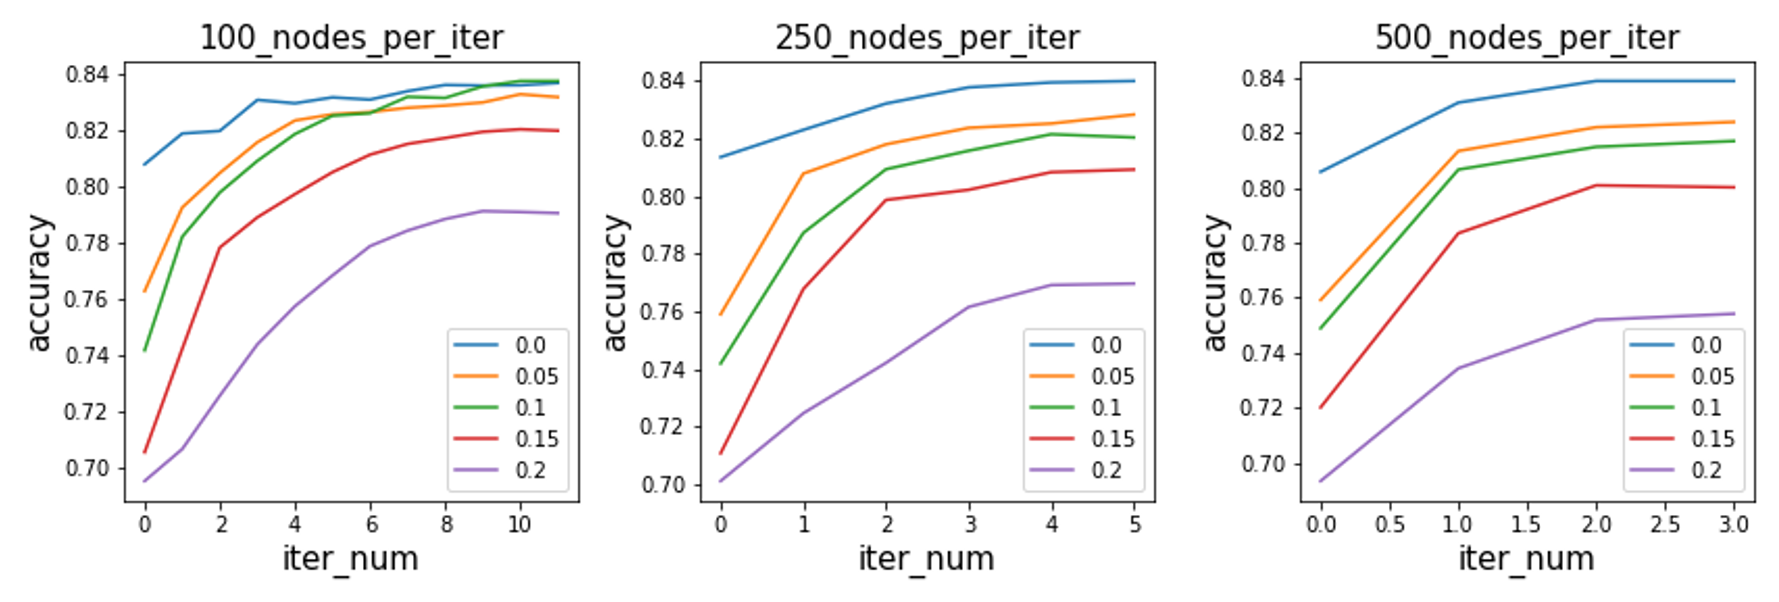 Node classification accuracy using different hyper-parameters. Different colors denote the results under different perturbation rate.(Results on Citeseer can be accessed in the supplementary material)